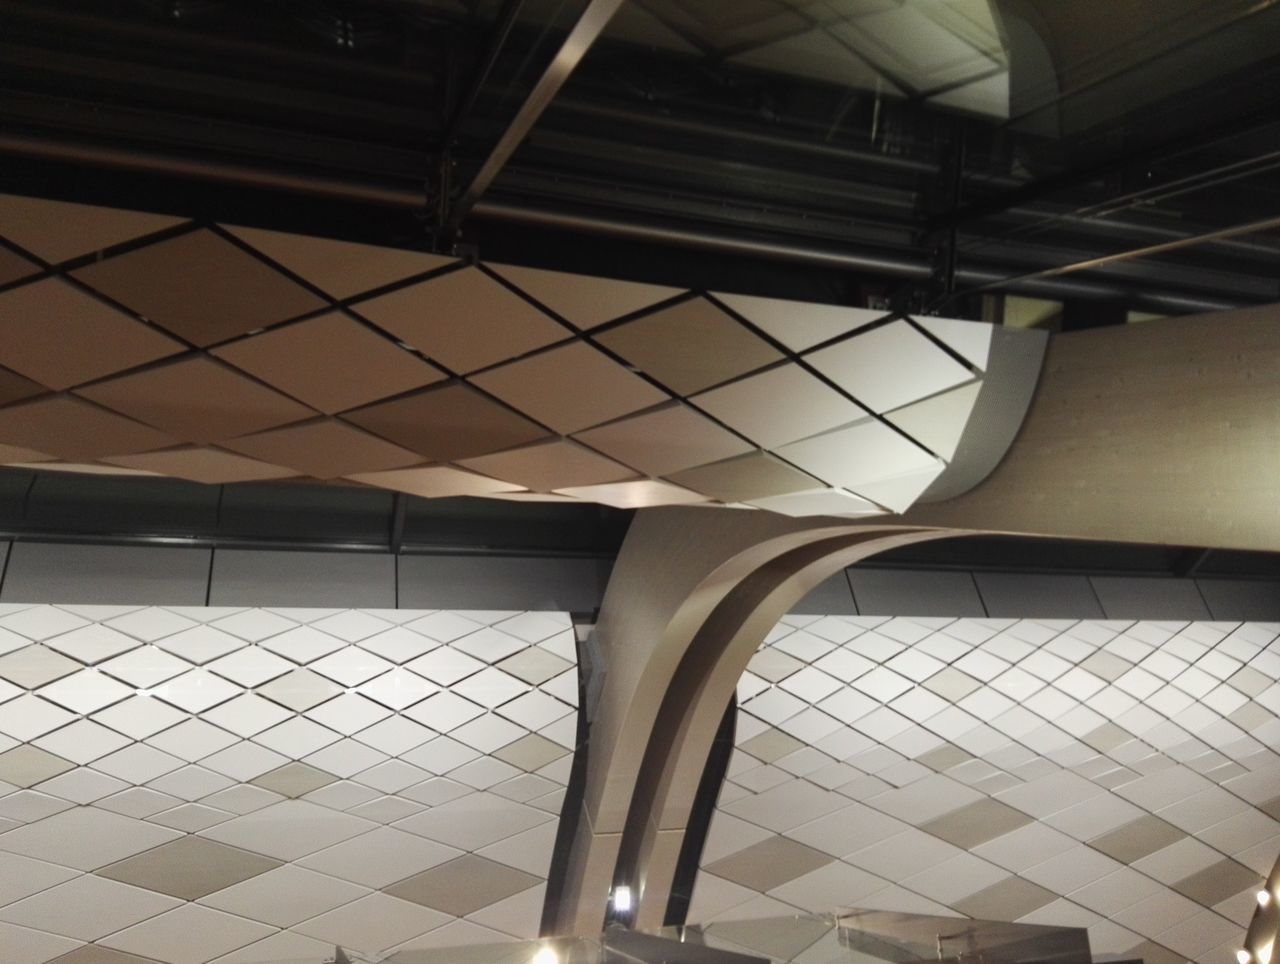 Architecture Architecture Art Brown Day Gardermoen Geometry Grey Indoors  Low Angle View No People Oslo Pattern